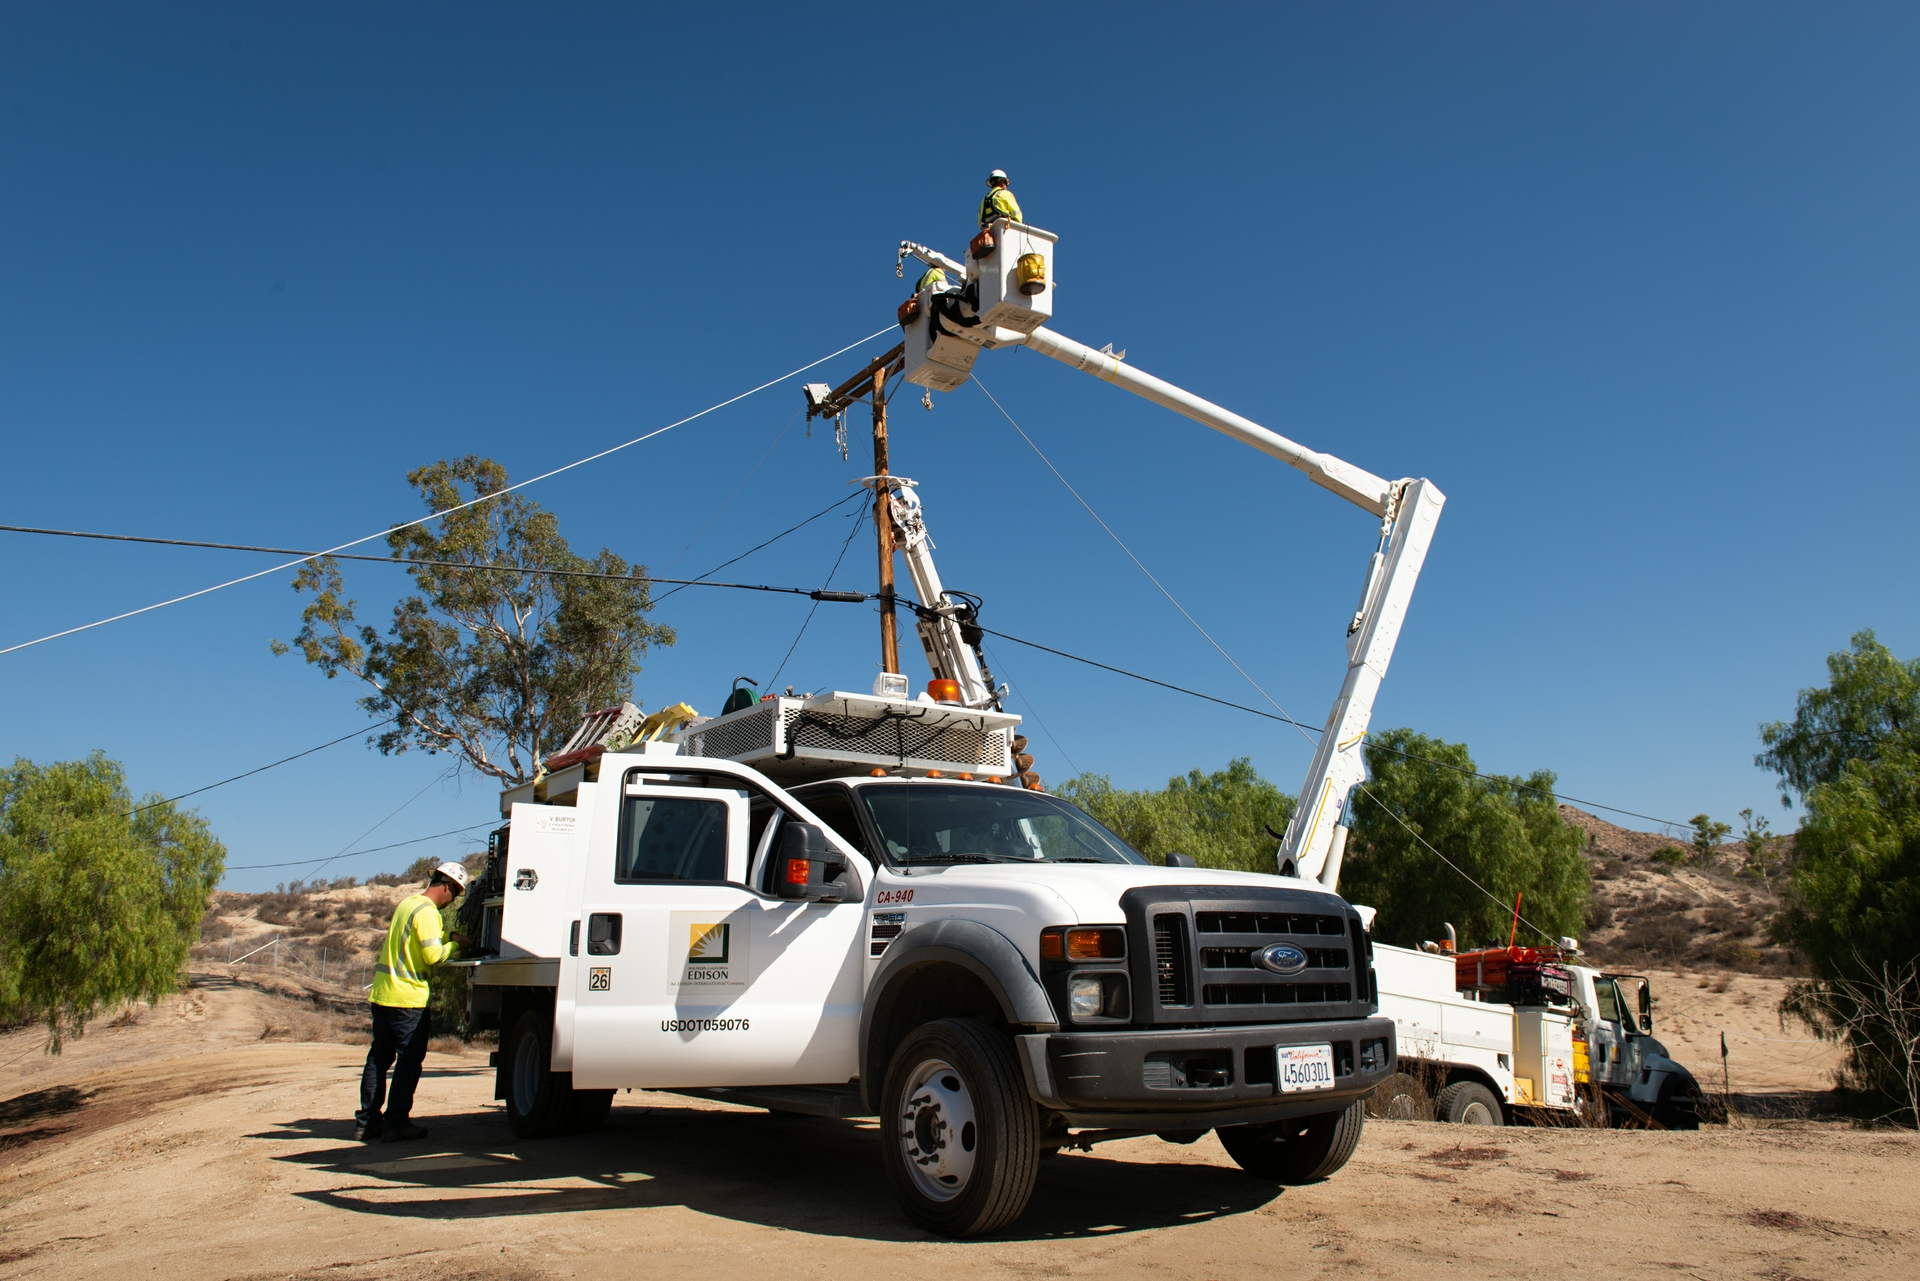 SCE's Wildomar District has so far installed three miles of insulated wires.